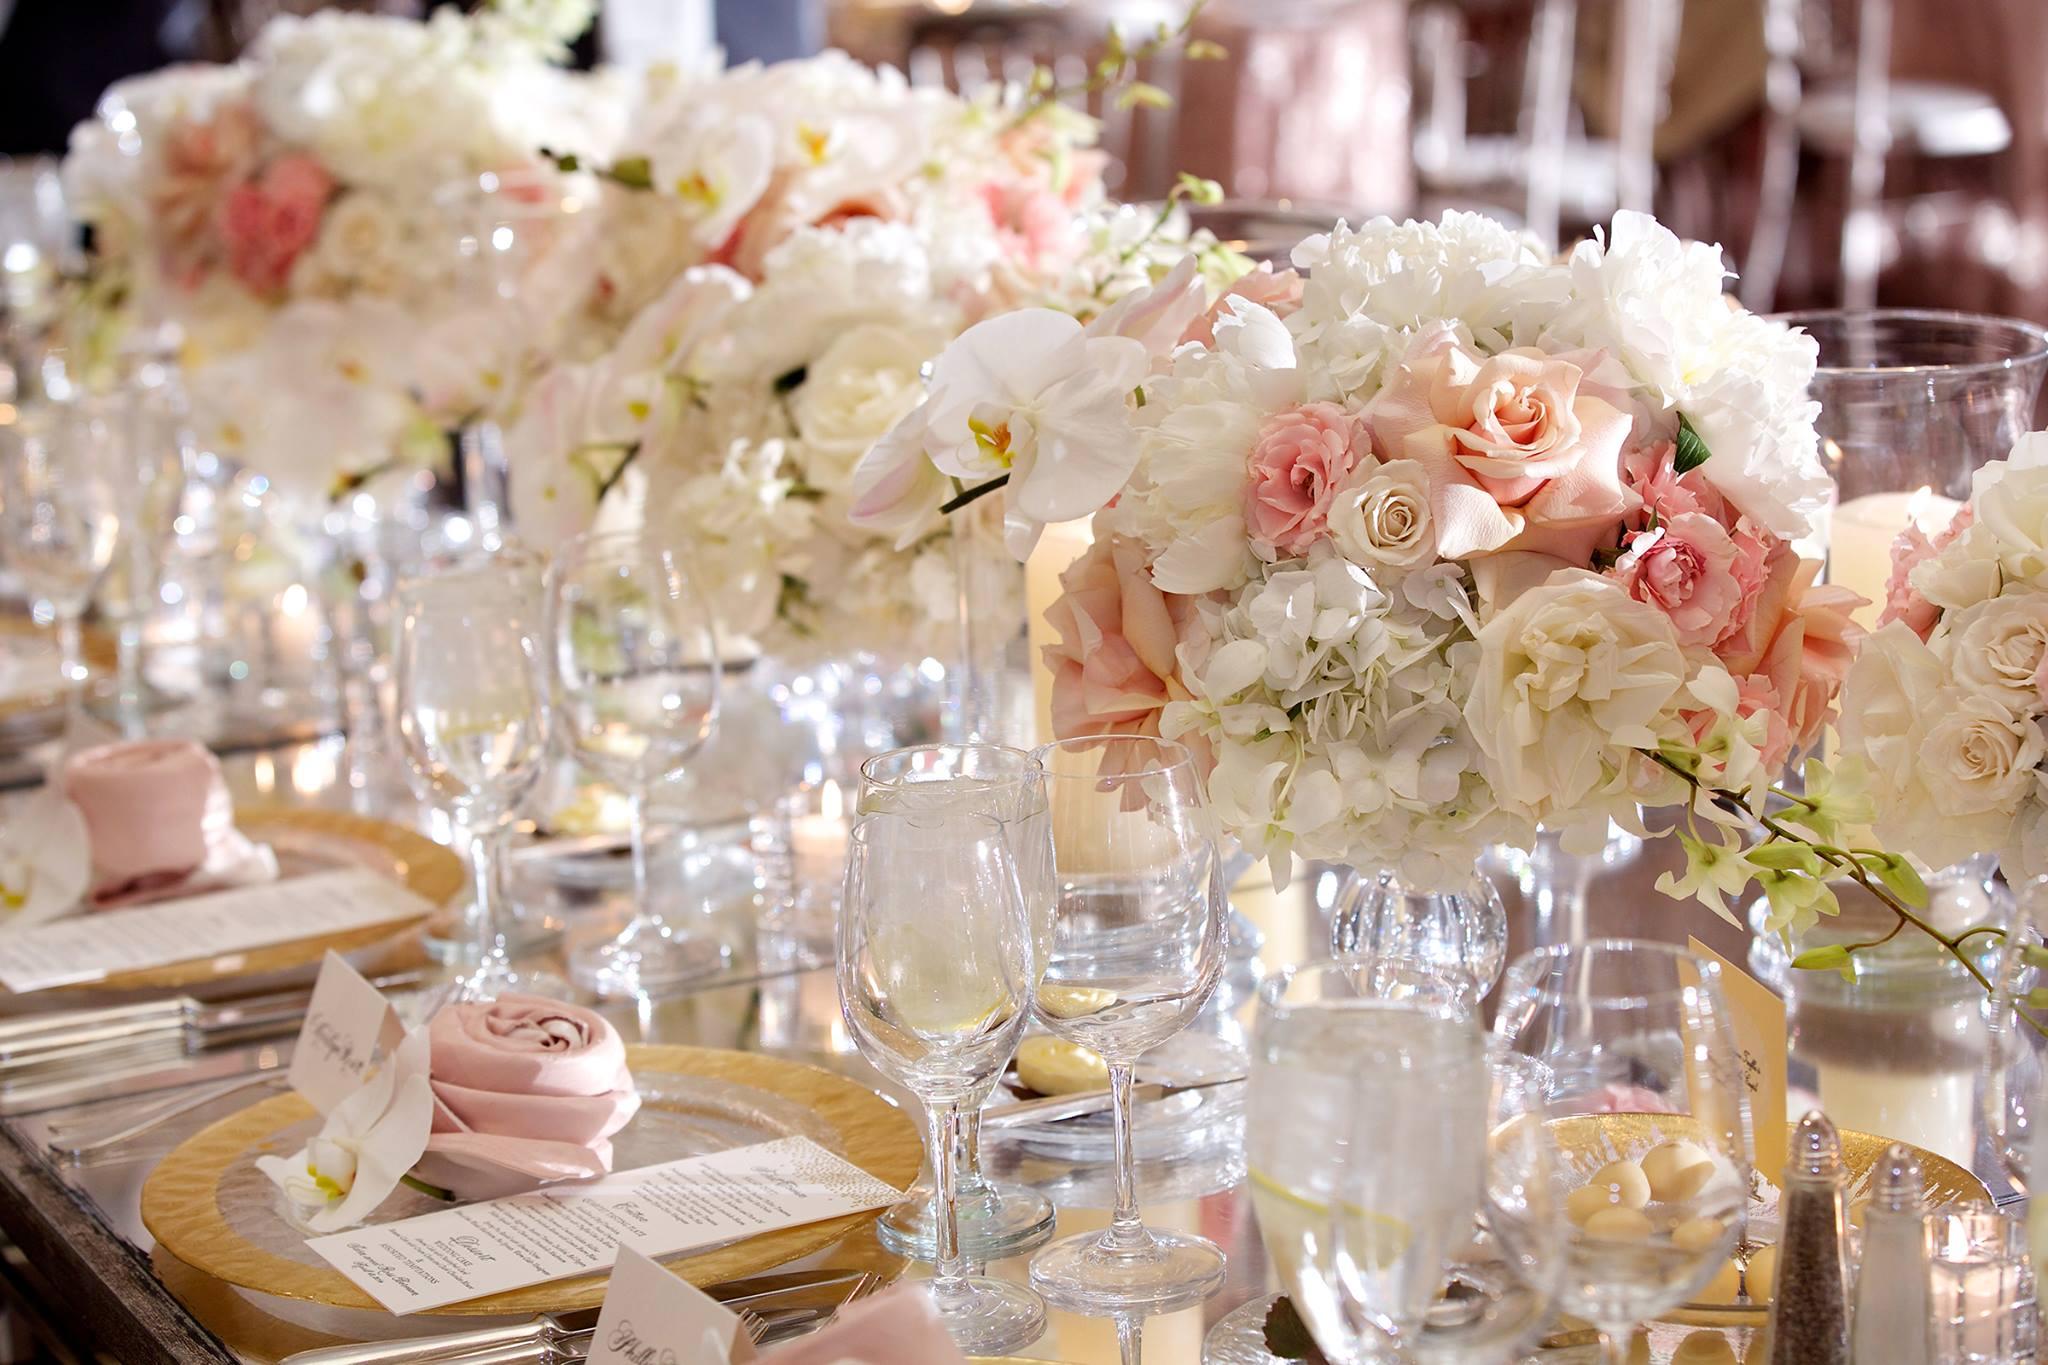 Flowers for wedding reception gallery wedding decoration ideas flowers for wedding reception choice image wedding decoration ideas flowers for wedding reception image collections wedding junglespirit Images